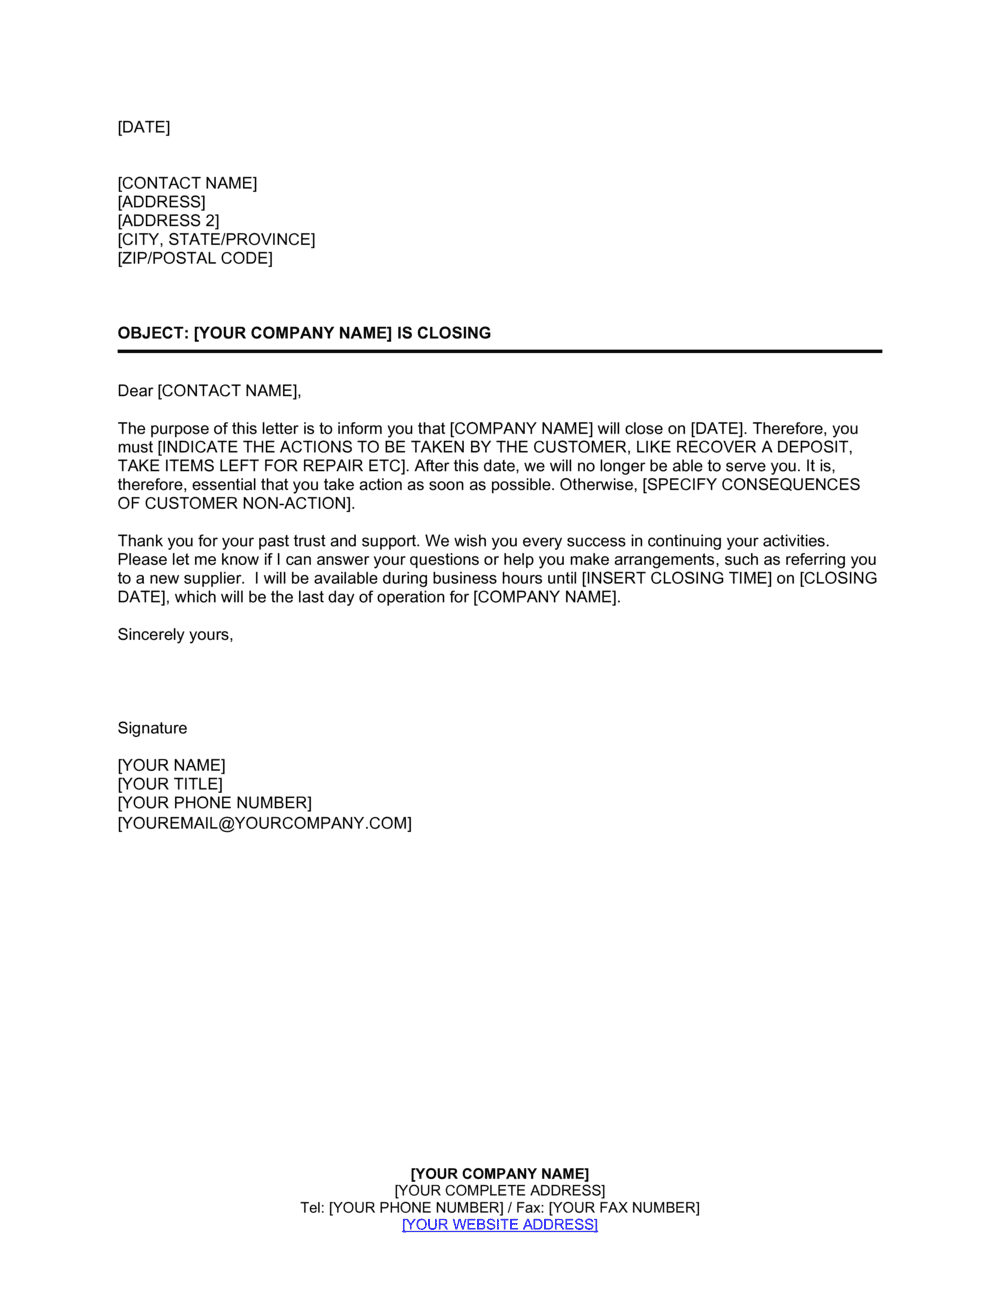 Business-in-a-Box's Company Is Closing Letter To Clients Template